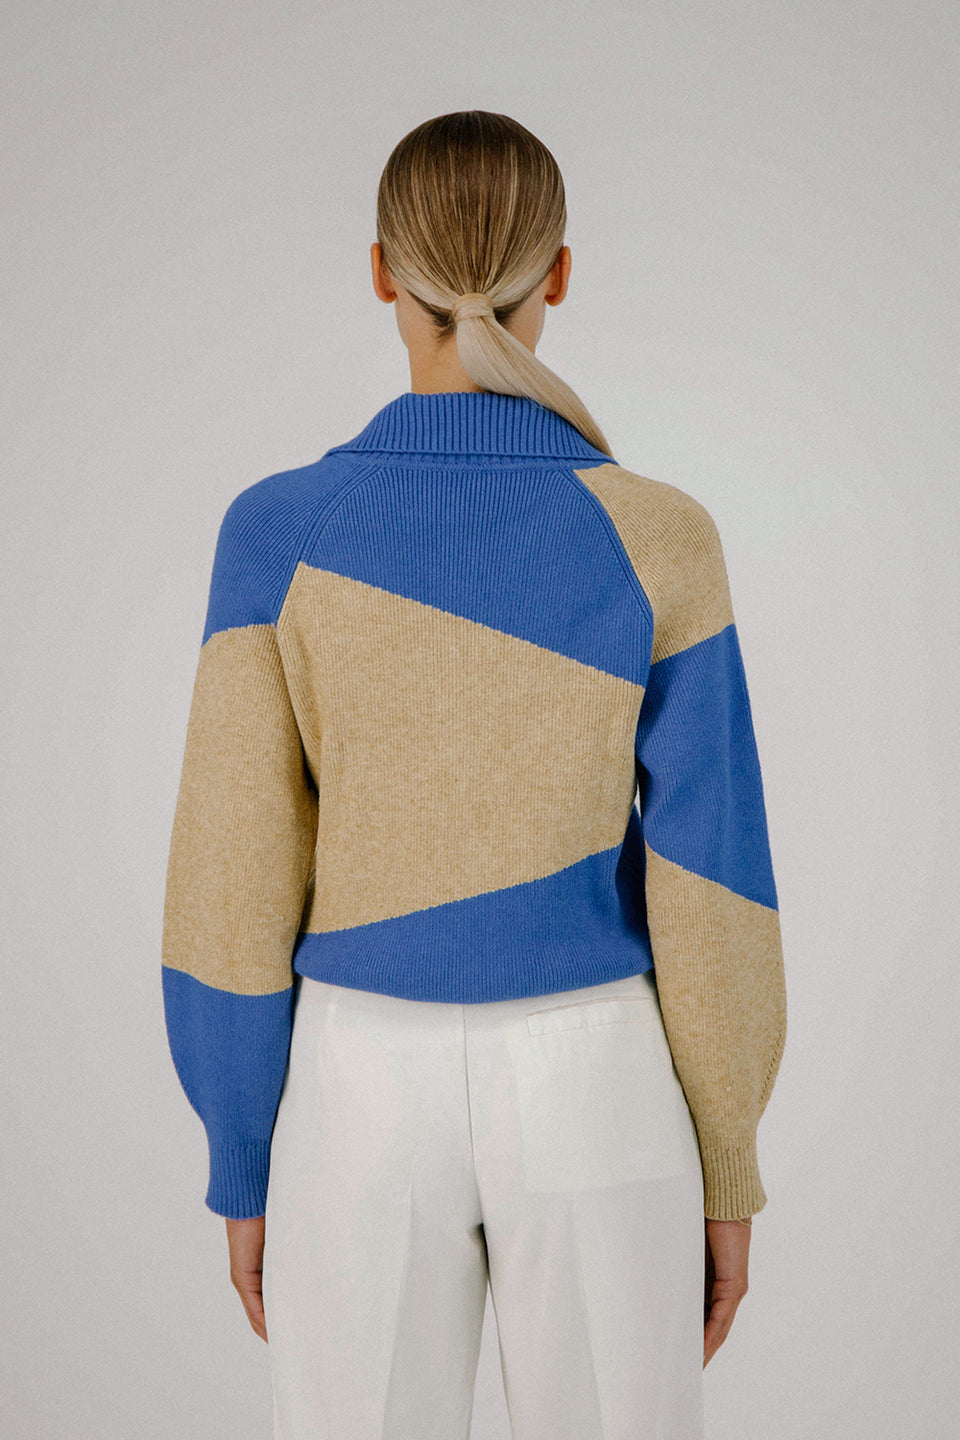 DECONSTRUCTED KNIT SWEATER OATMEAL / BLUE